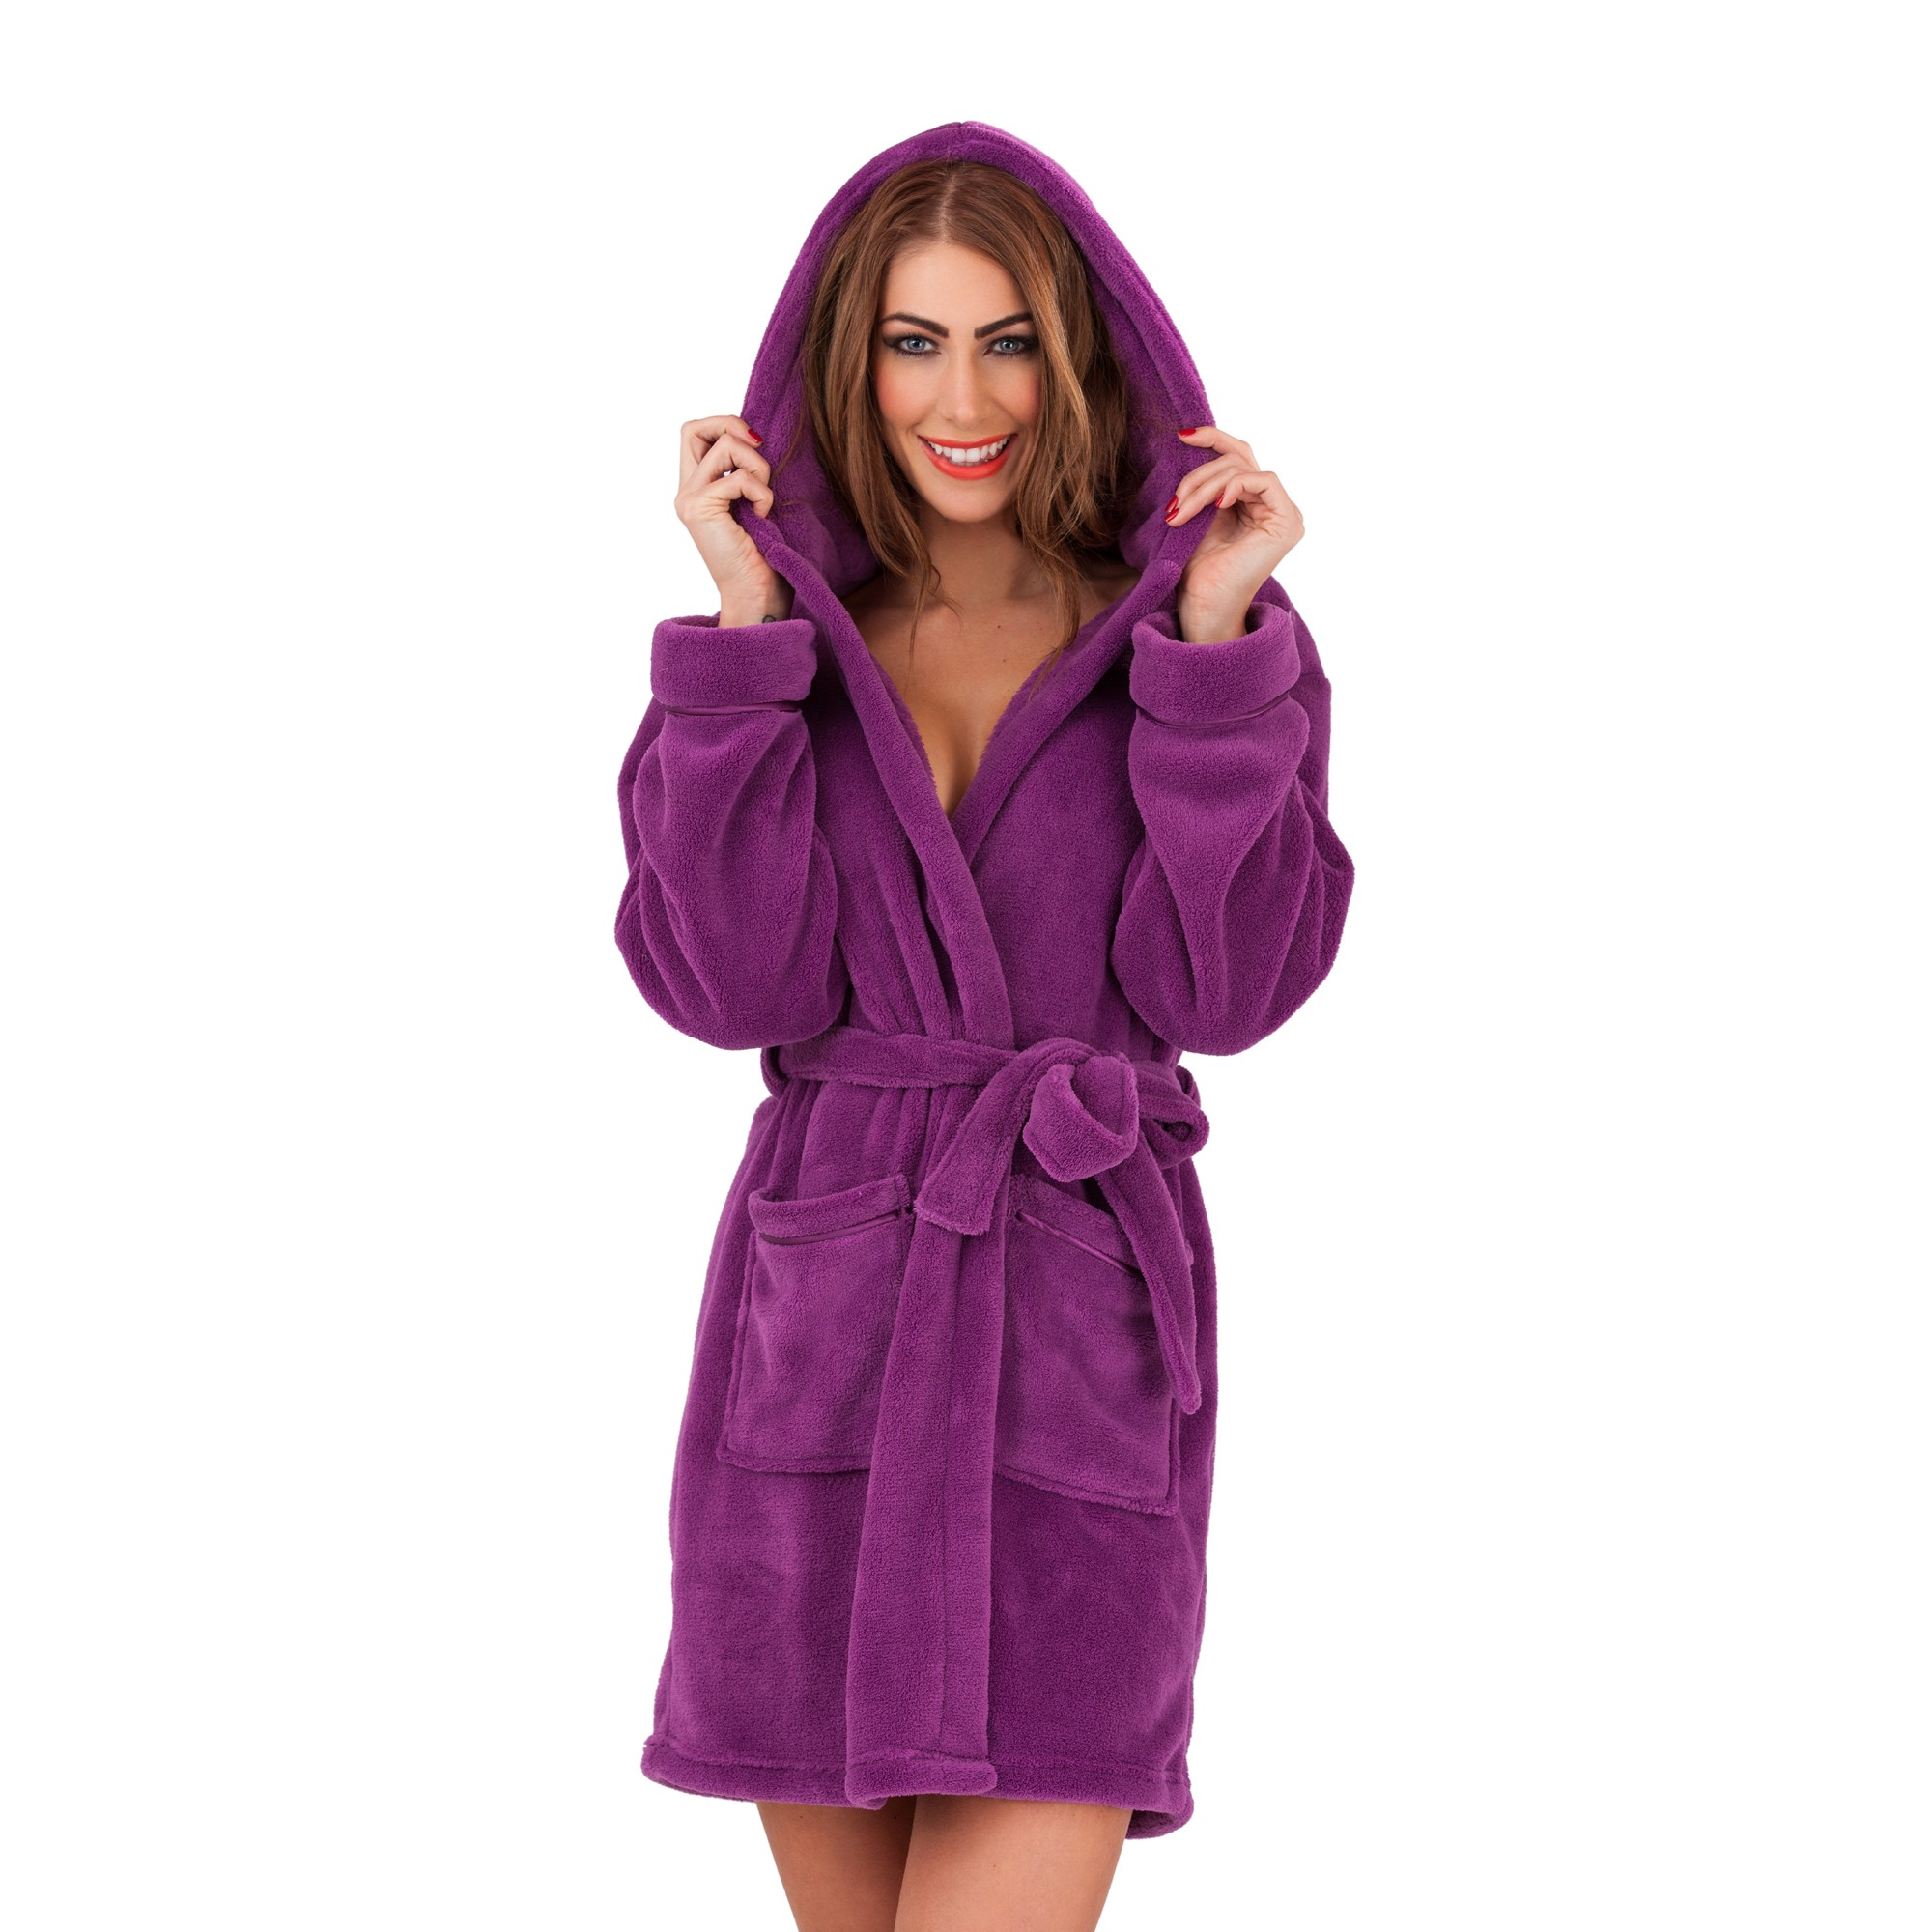 Ladies Super Soft Hooded Fleece Dressing Gown - Berry  cc5c9c739